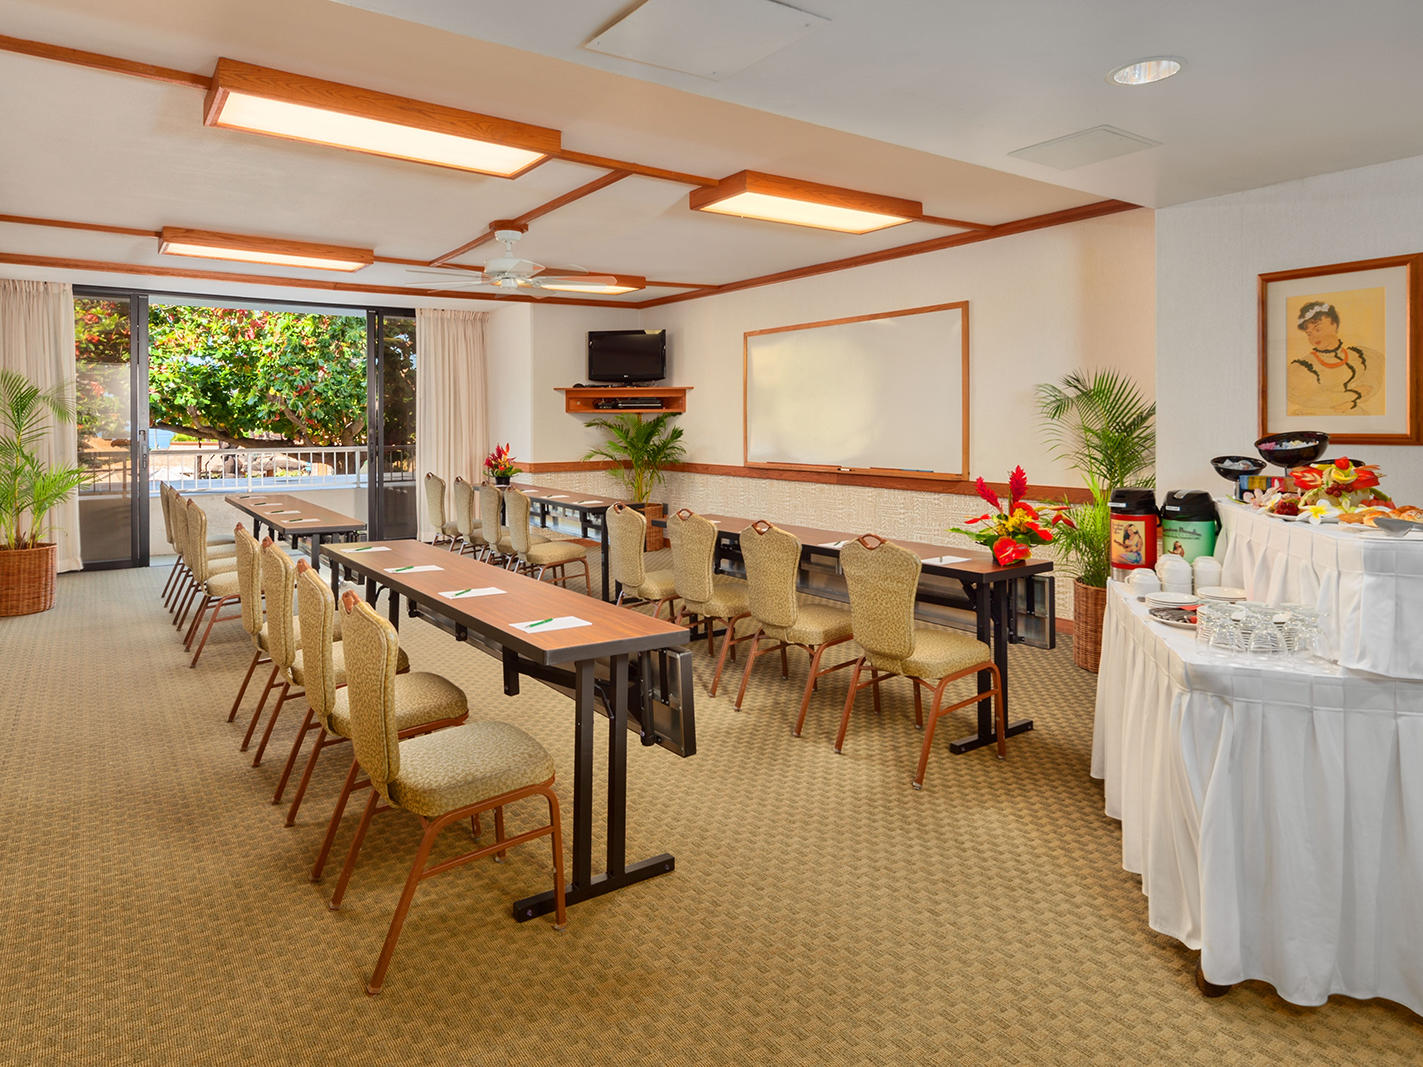 meeting room with chairs and catering setup